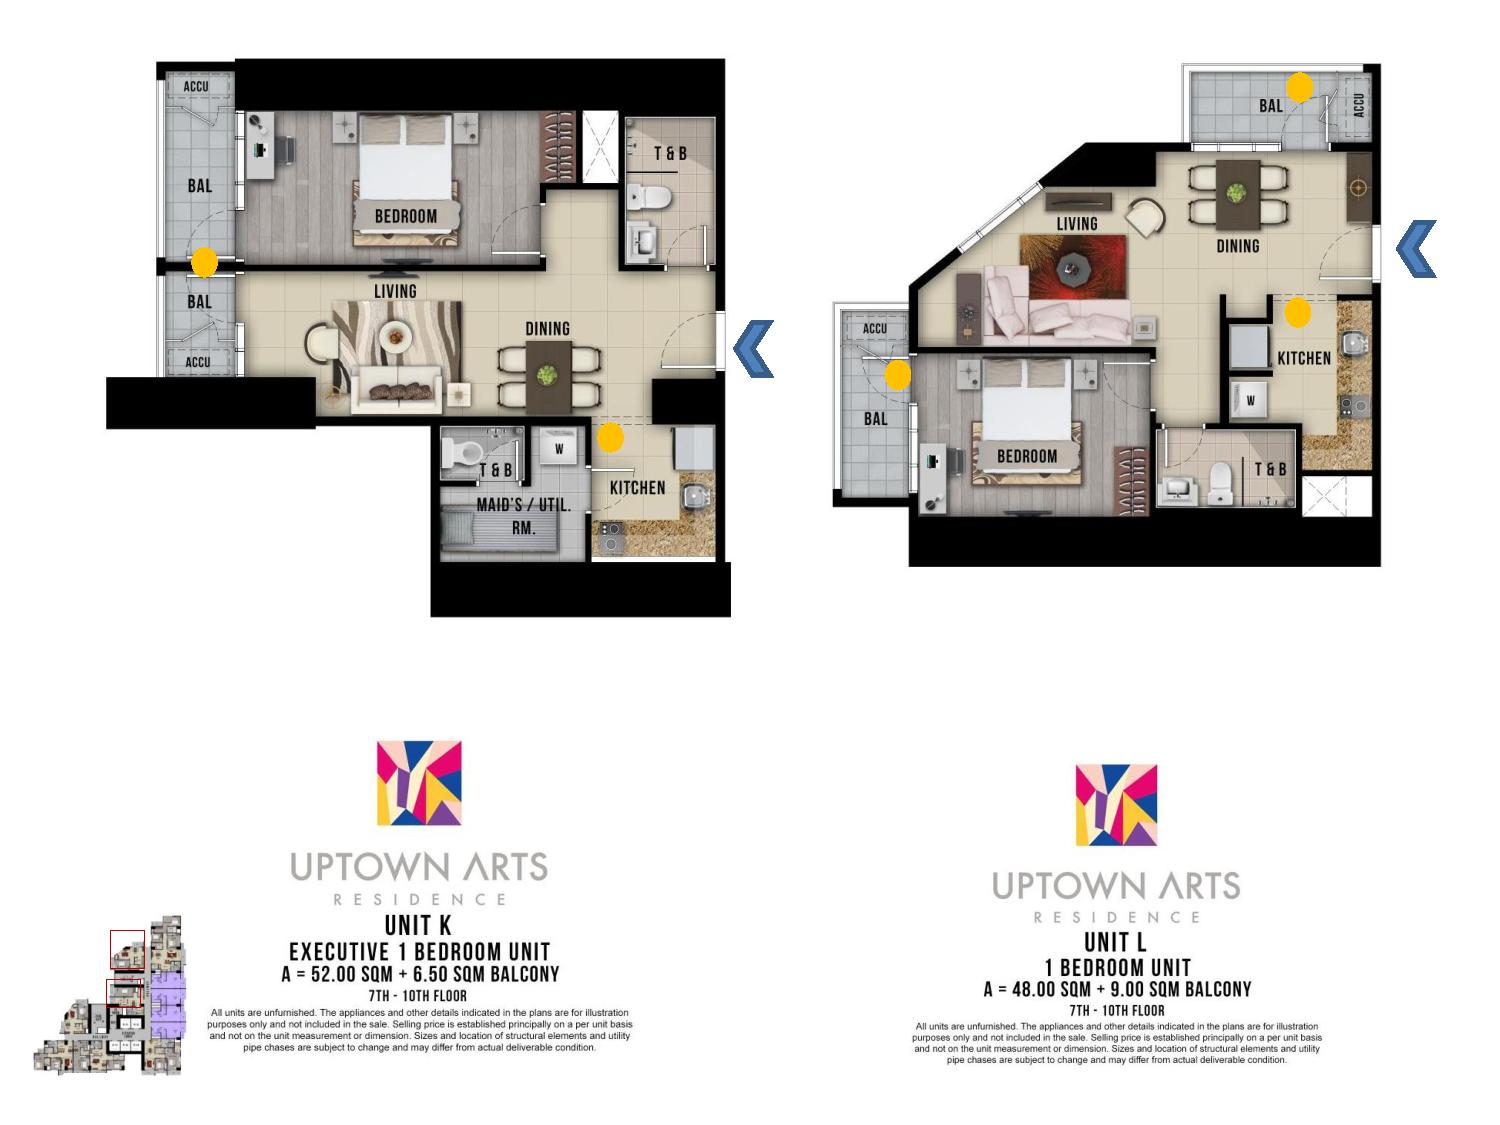 executive one bedroom unit layout Uptown Arts Residence  Preselling Condo For Sale in Bonifacio Global City BGC